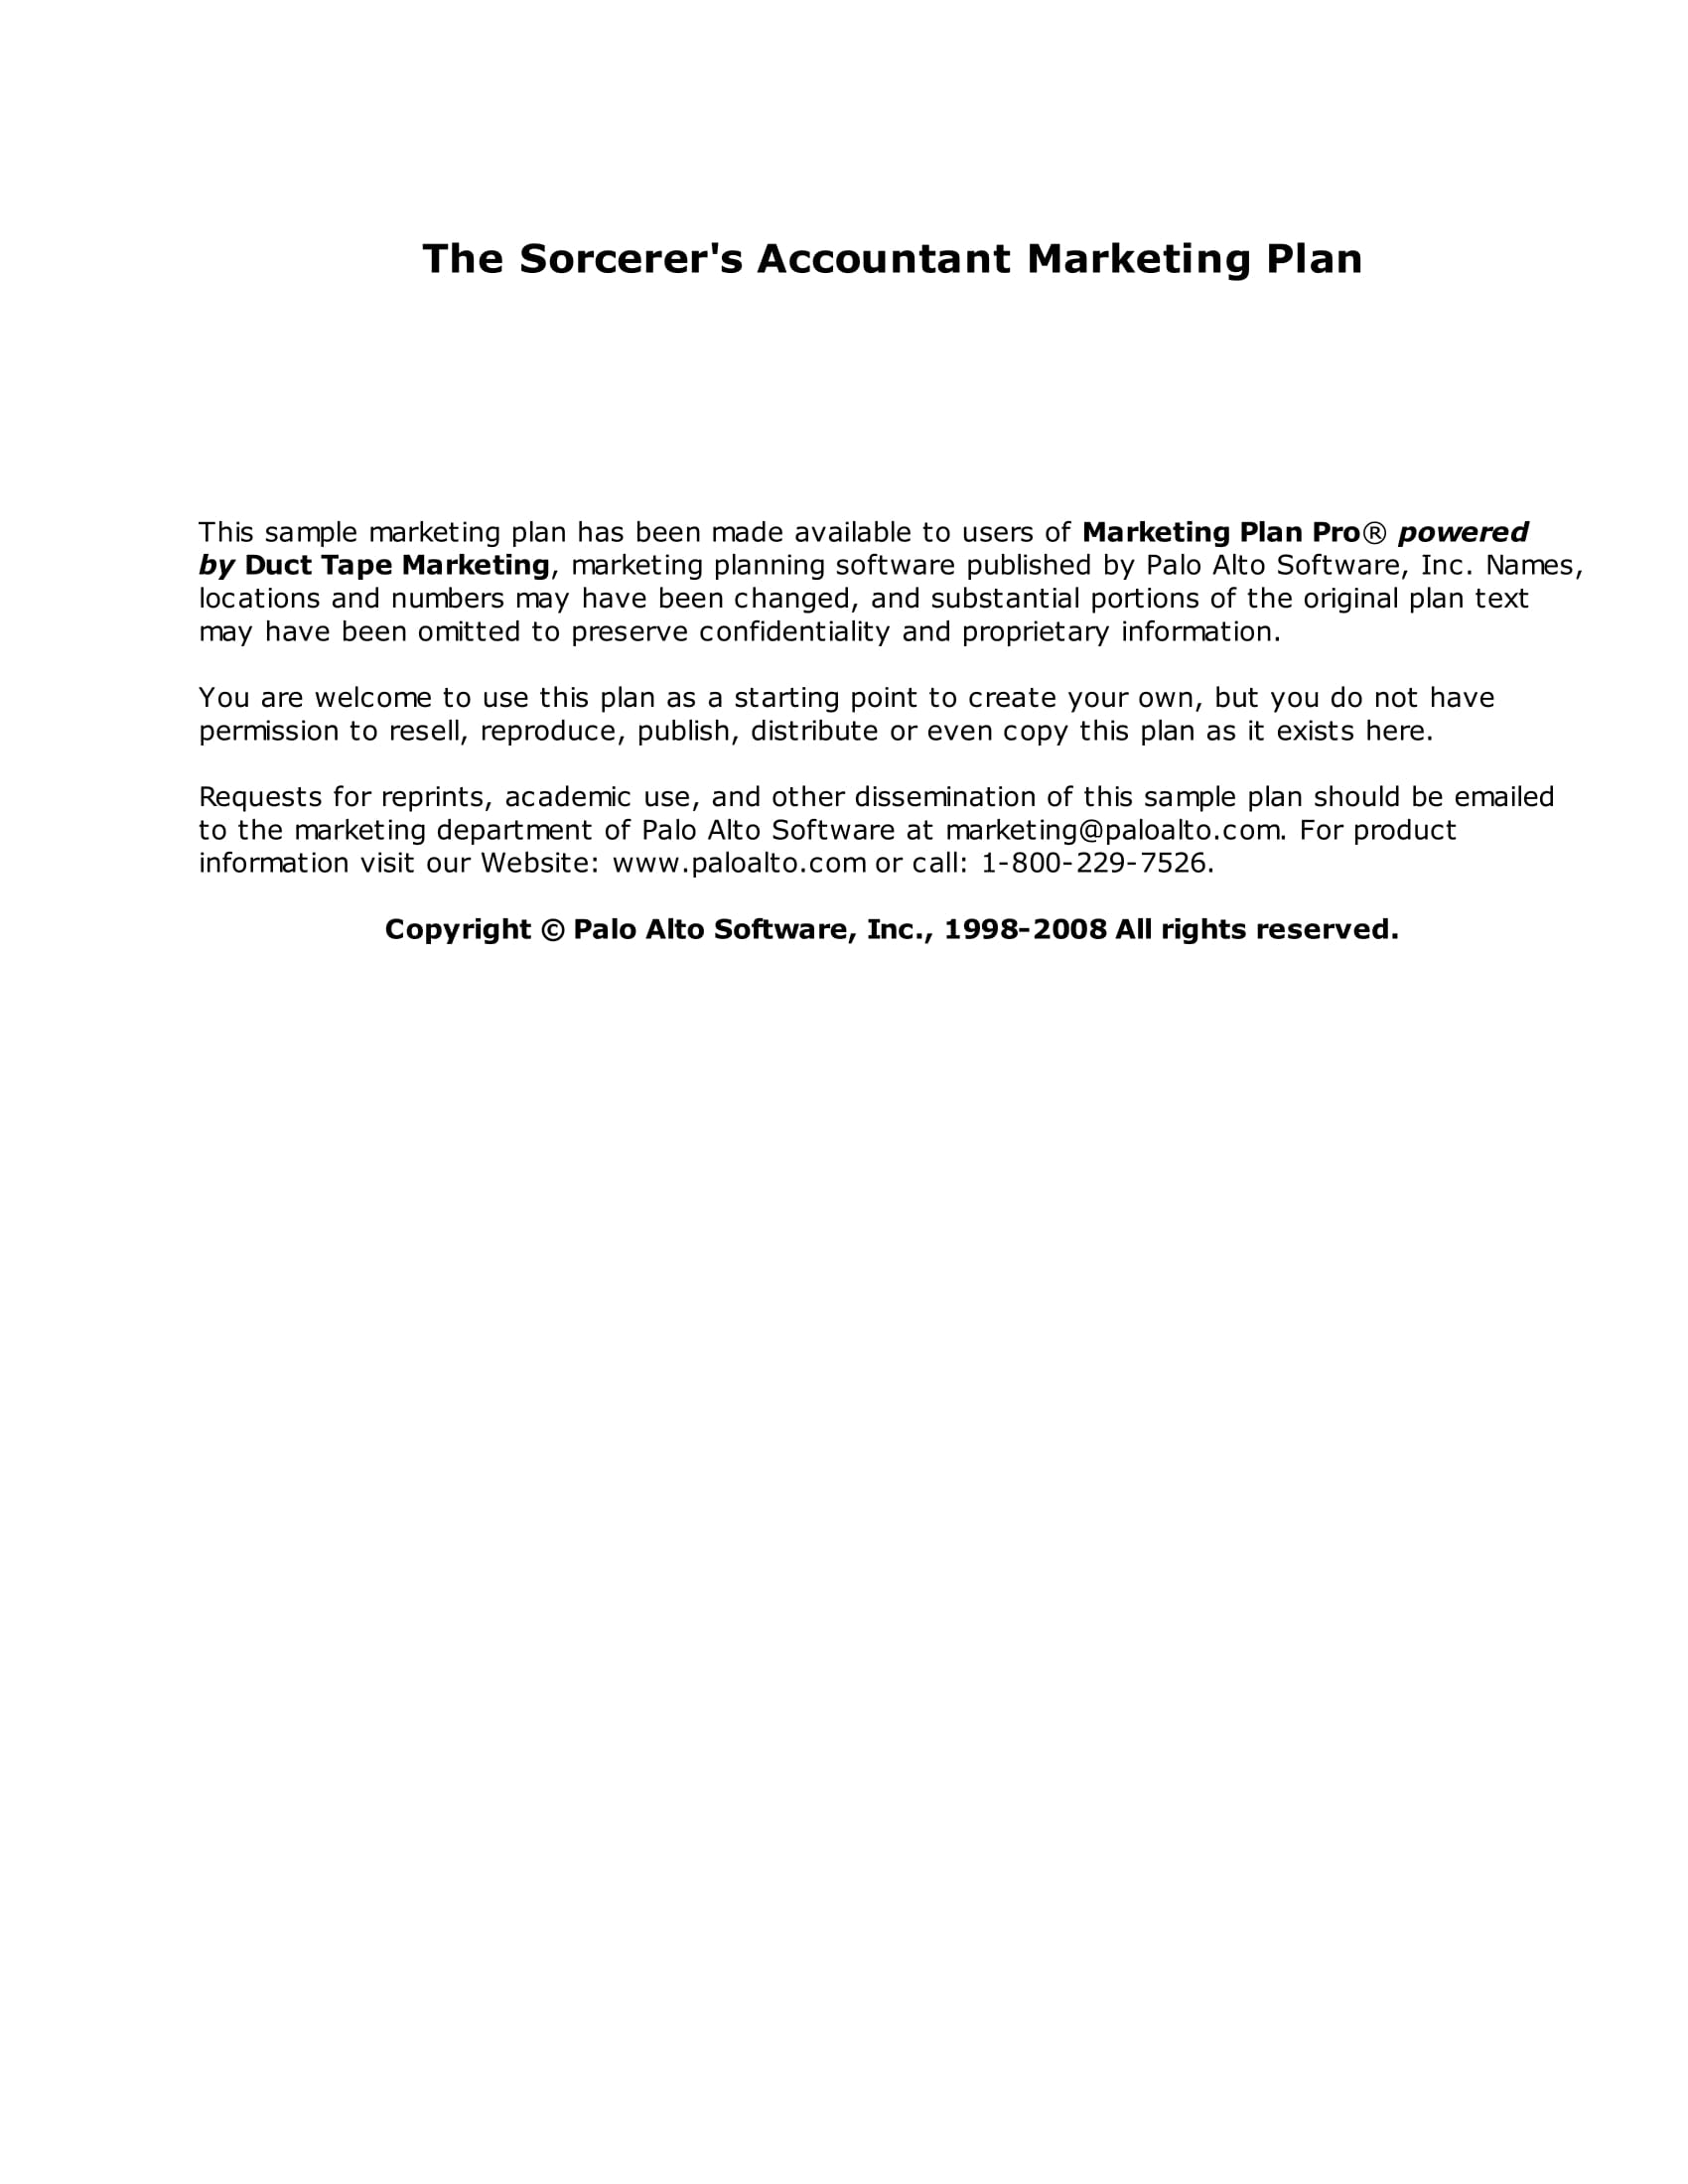 sorcerers accountant marketing plan example